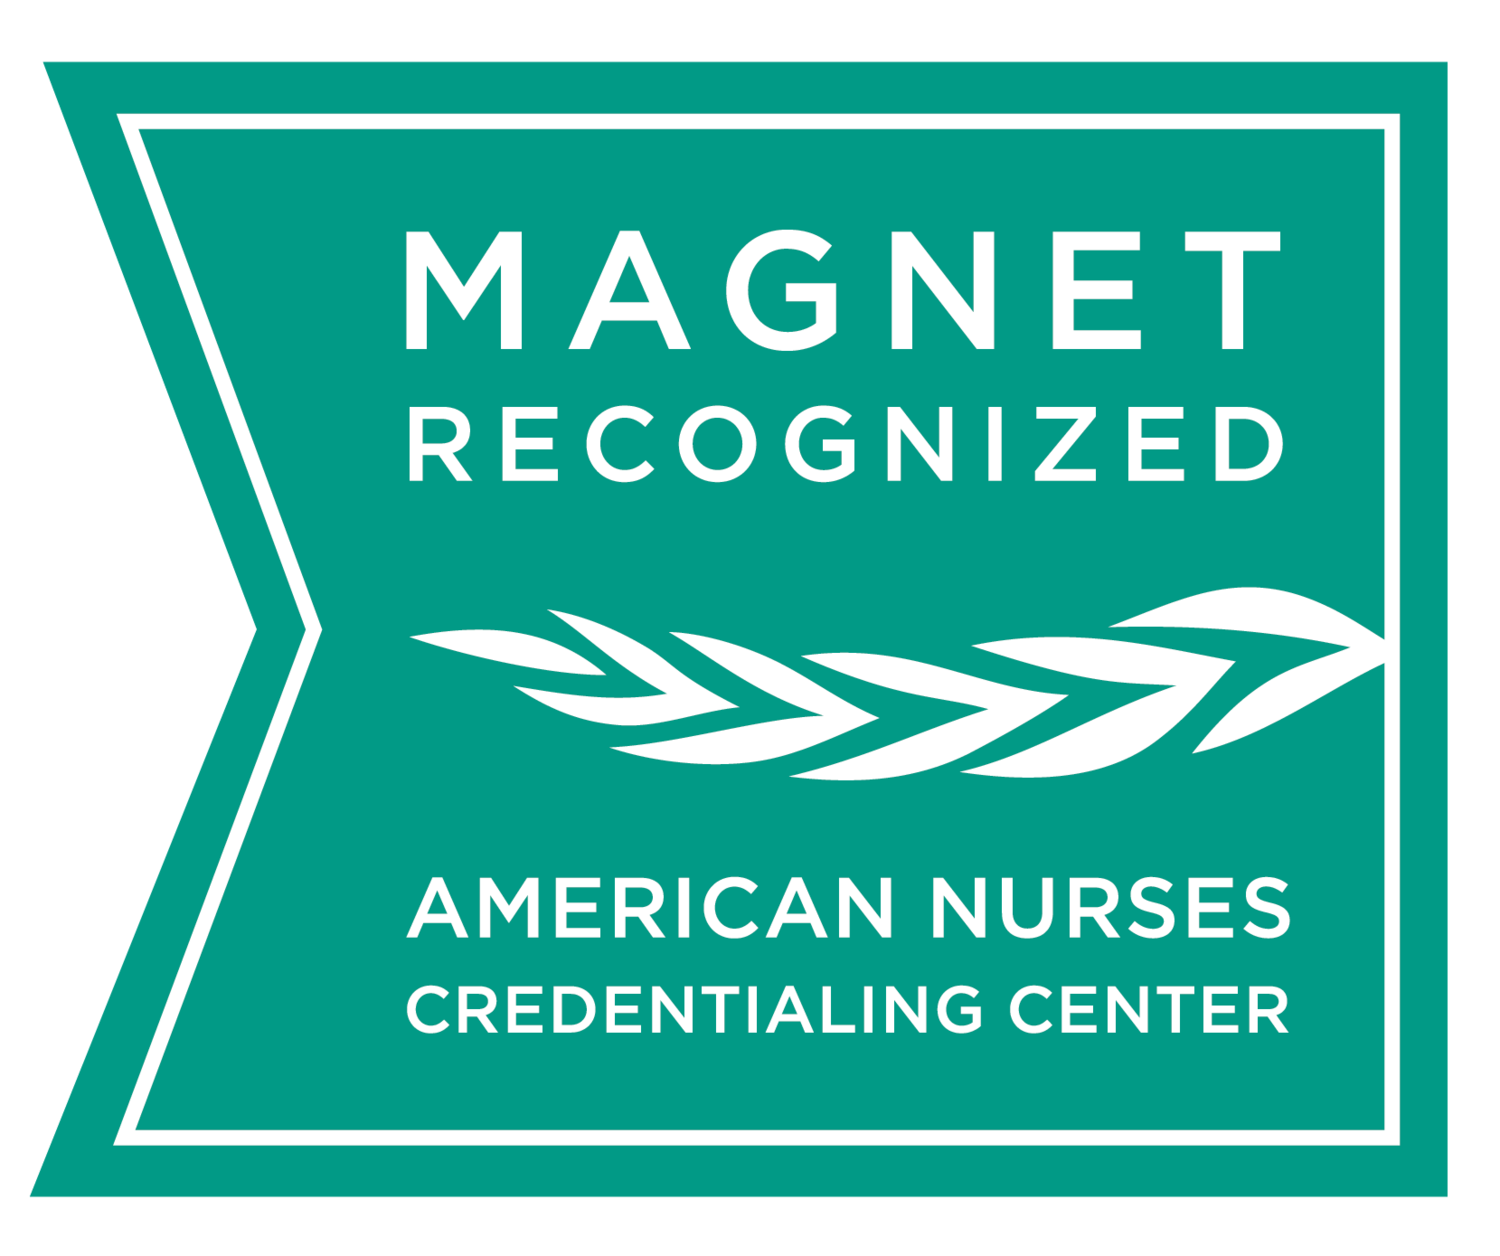 ucsf nurses recognized nationally for excellence in patient care and